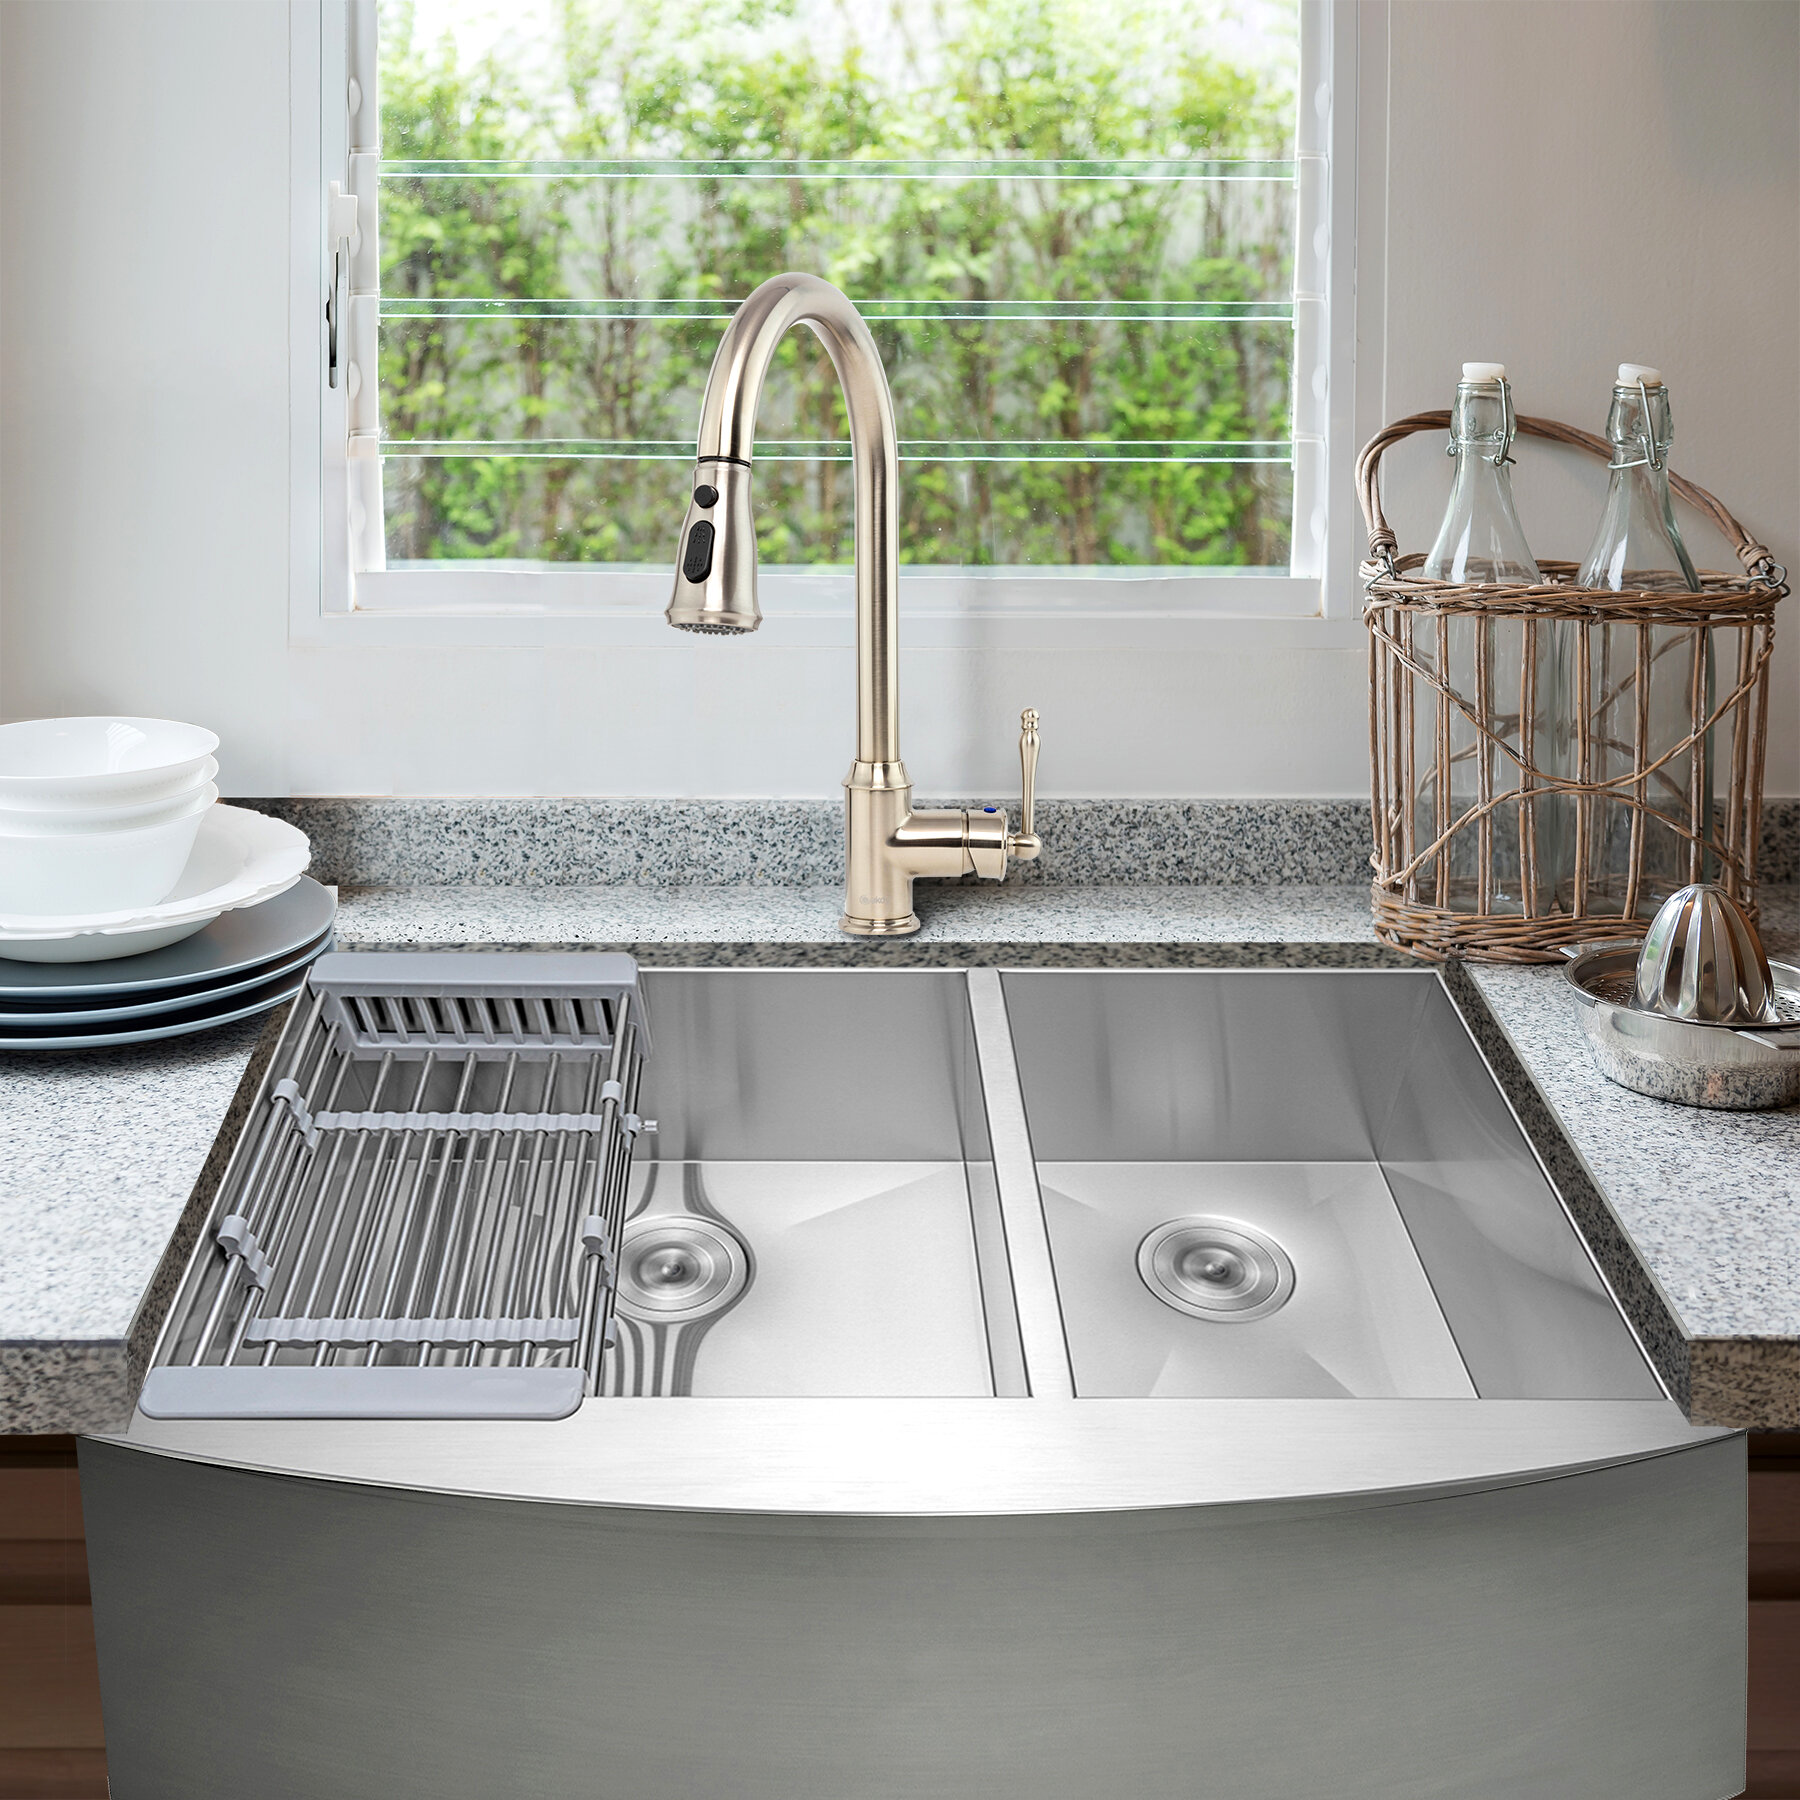 "12"" L x 12"" W Double Basin Farmhouse Kitchen Sink with Faucet"